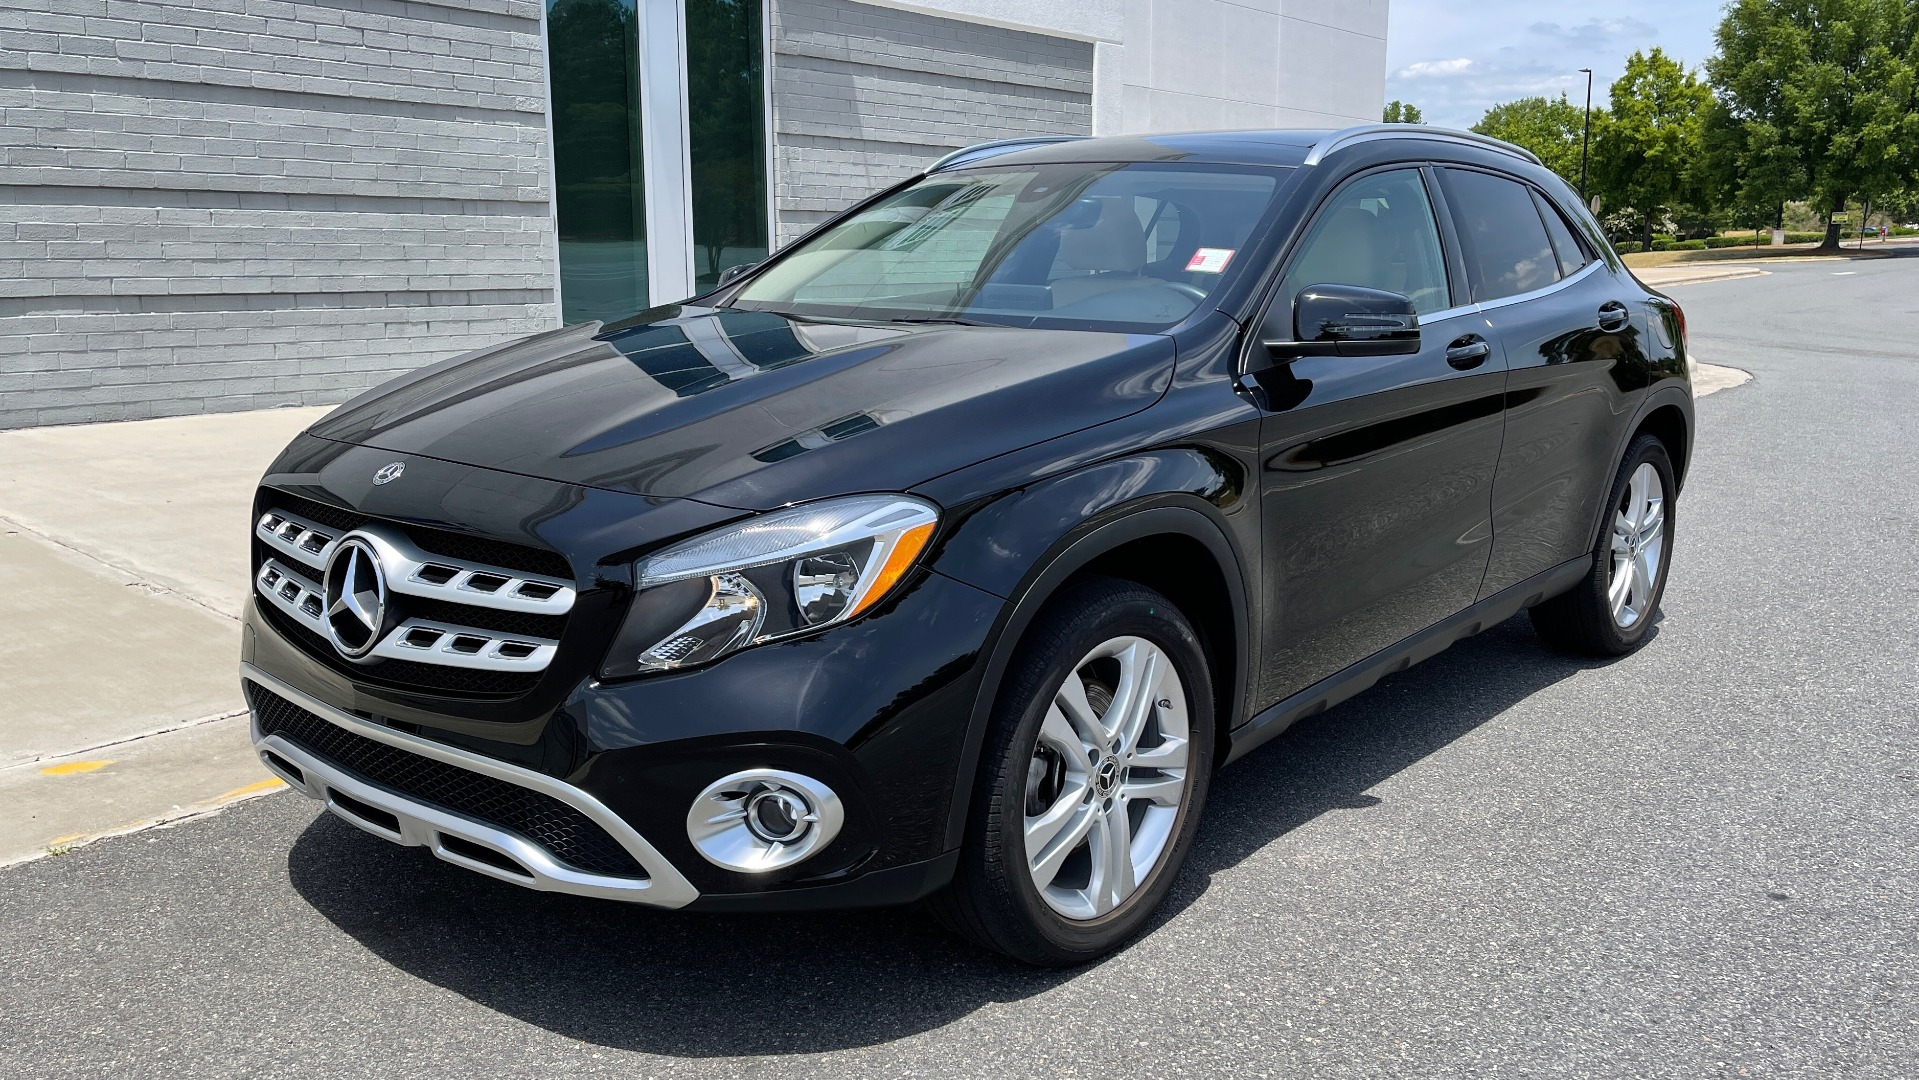 Used 2018 Mercedes-Benz GLA 250 4MATIC SUV / PANO-ROOF / HTD STS / BLIND SPOT ASST / APPLE for sale $31,995 at Formula Imports in Charlotte NC 28227 3